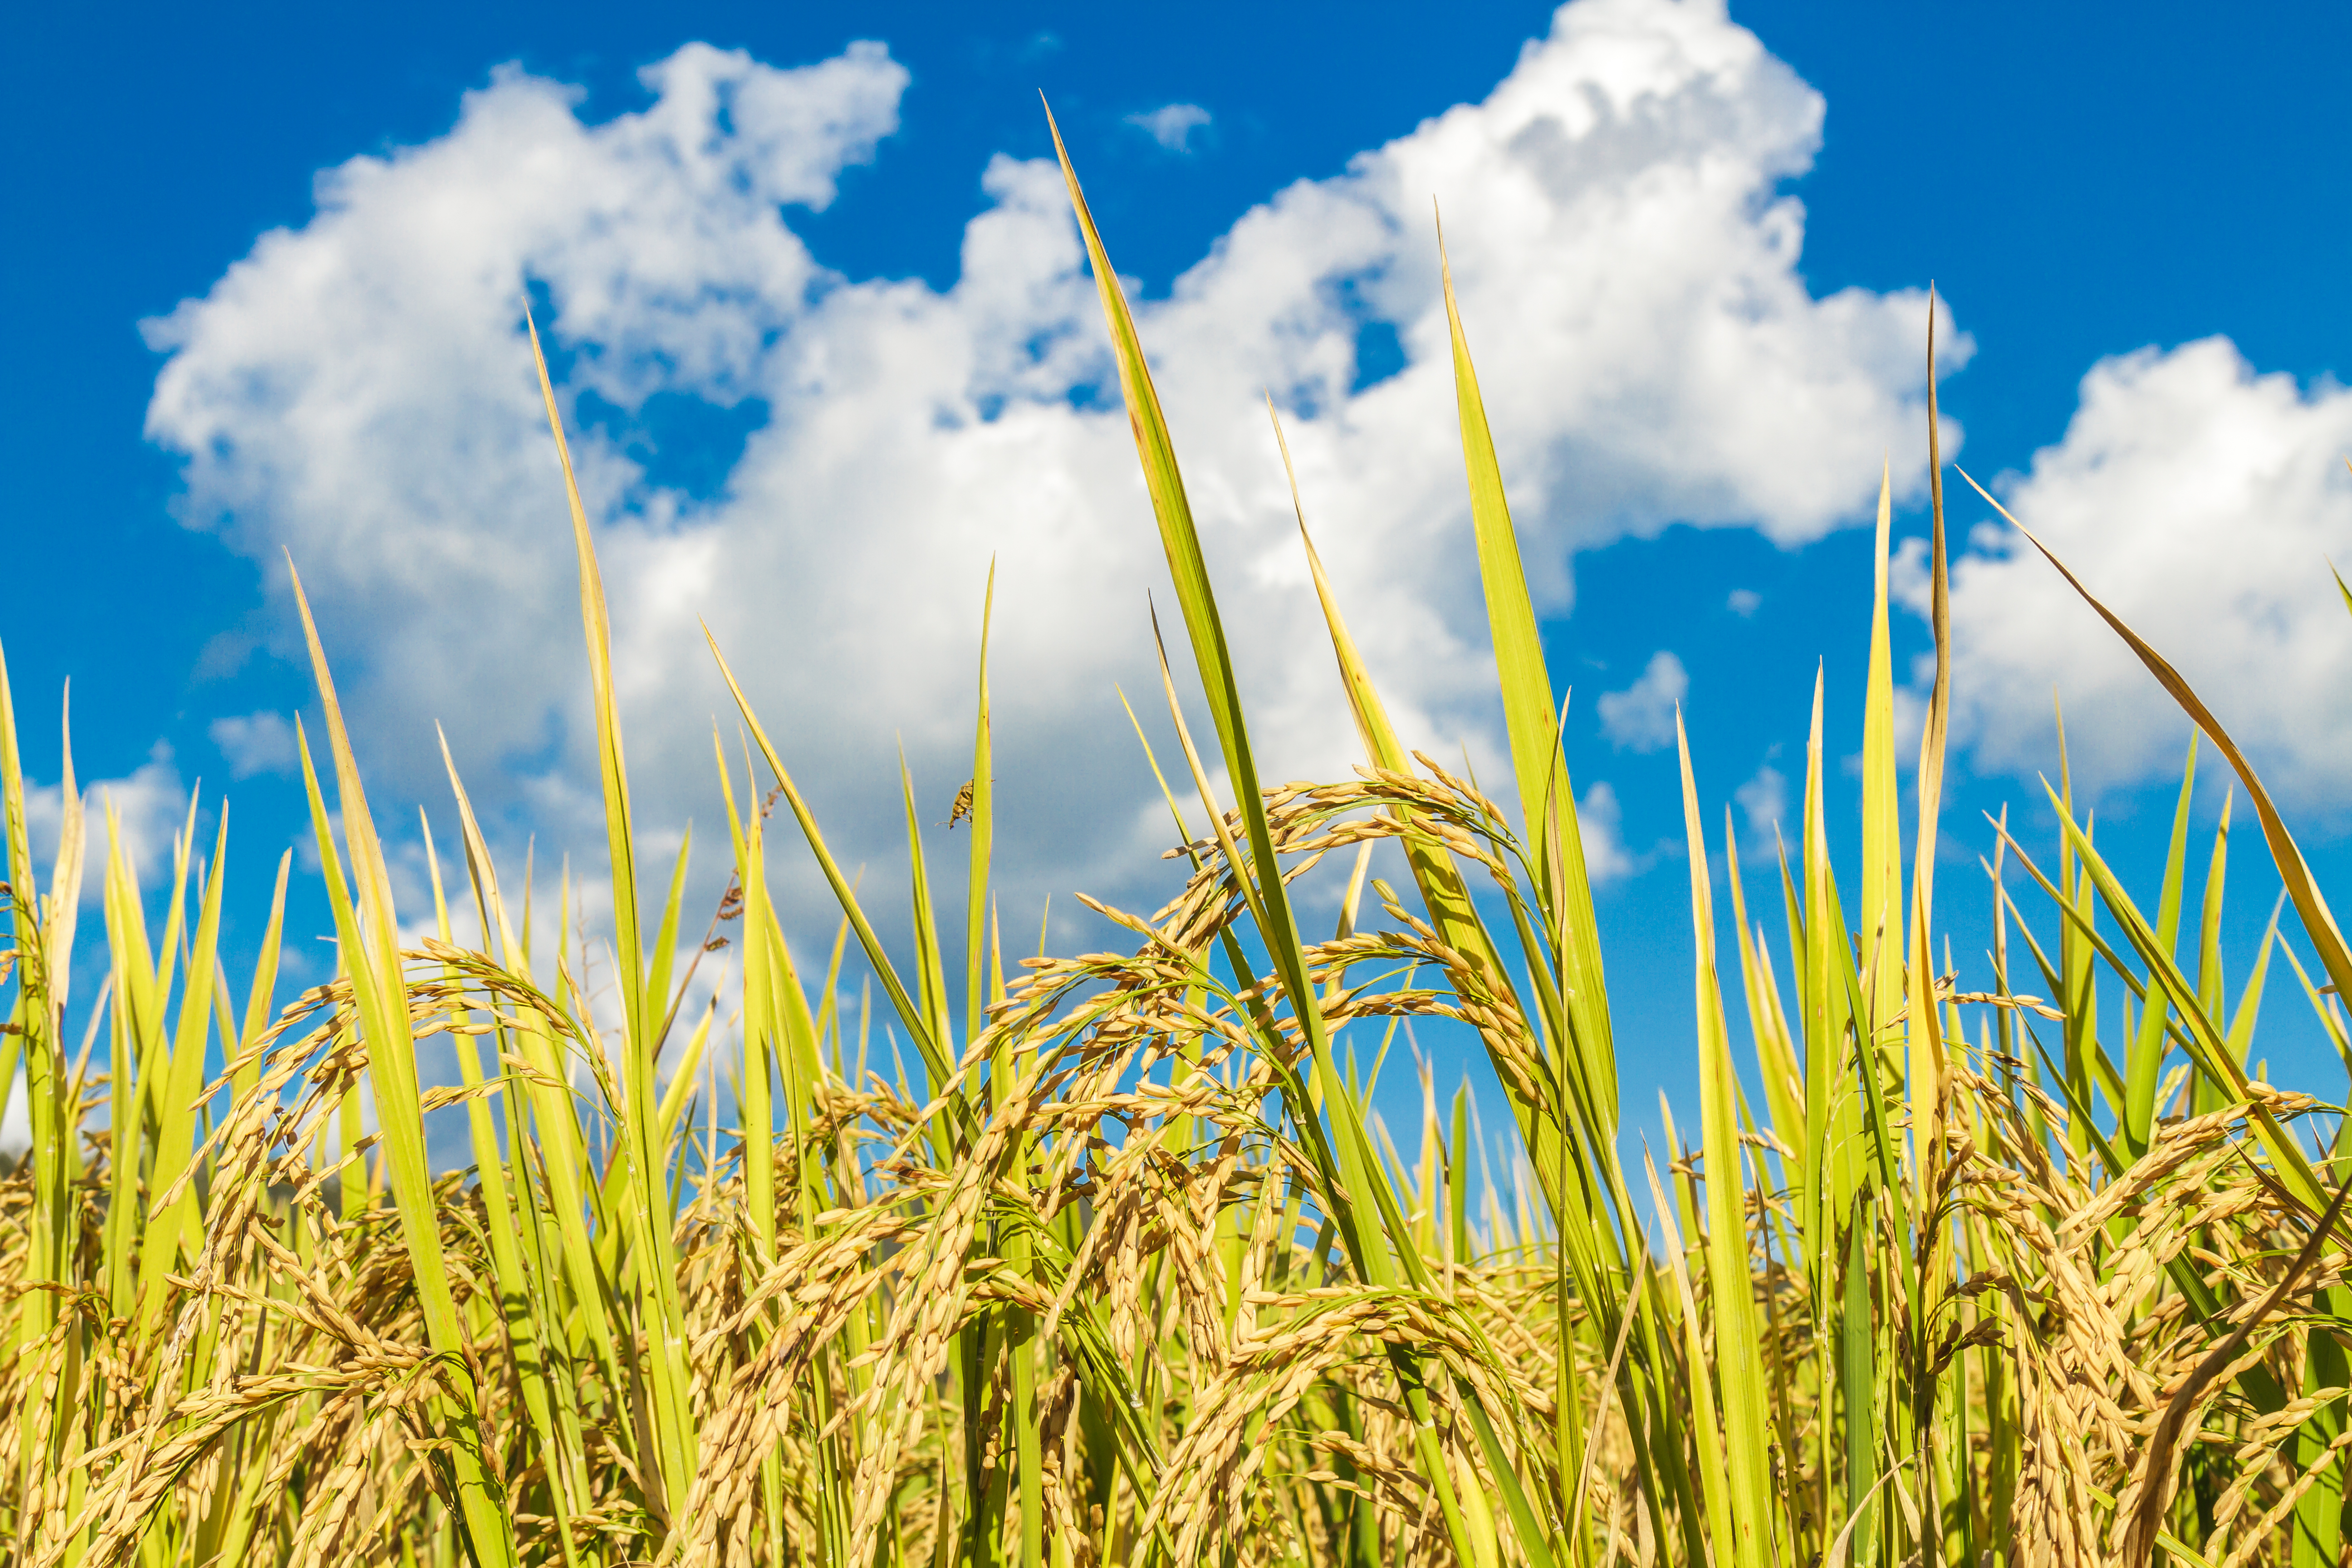 Paddy rice field landscape and blue sky and white cloud.